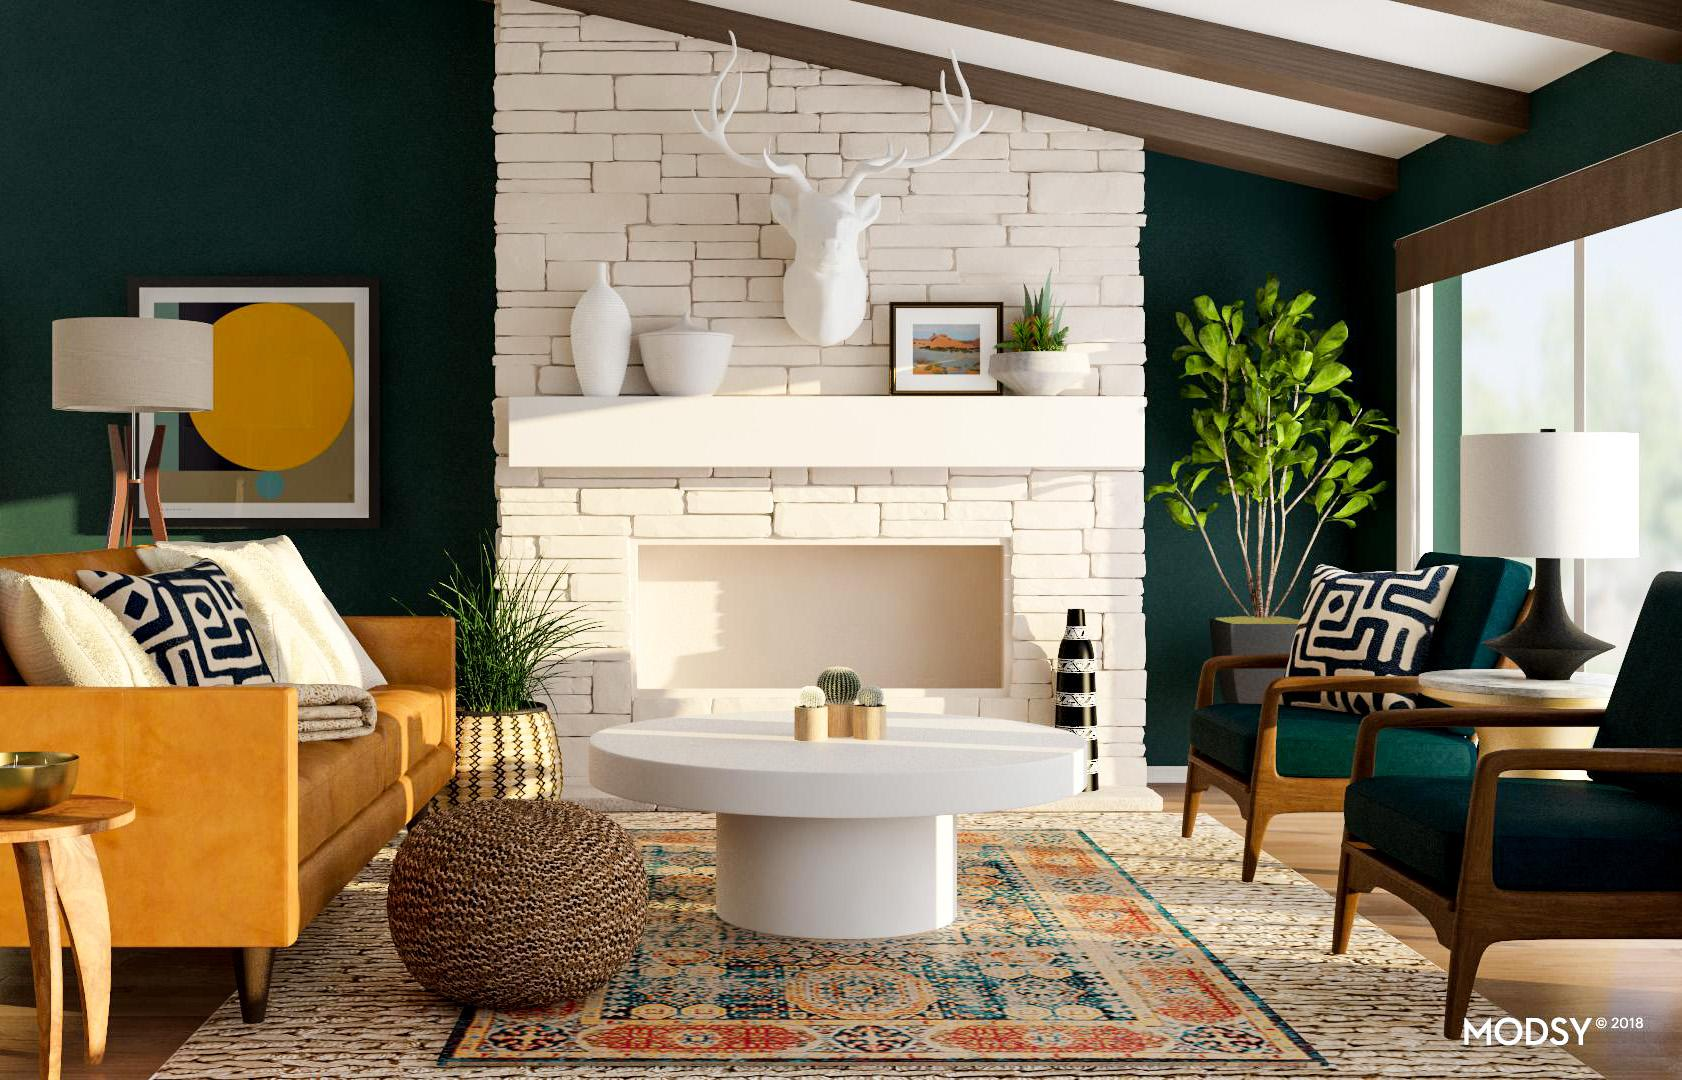 The 2019 Interior Design Trends We're Tracking